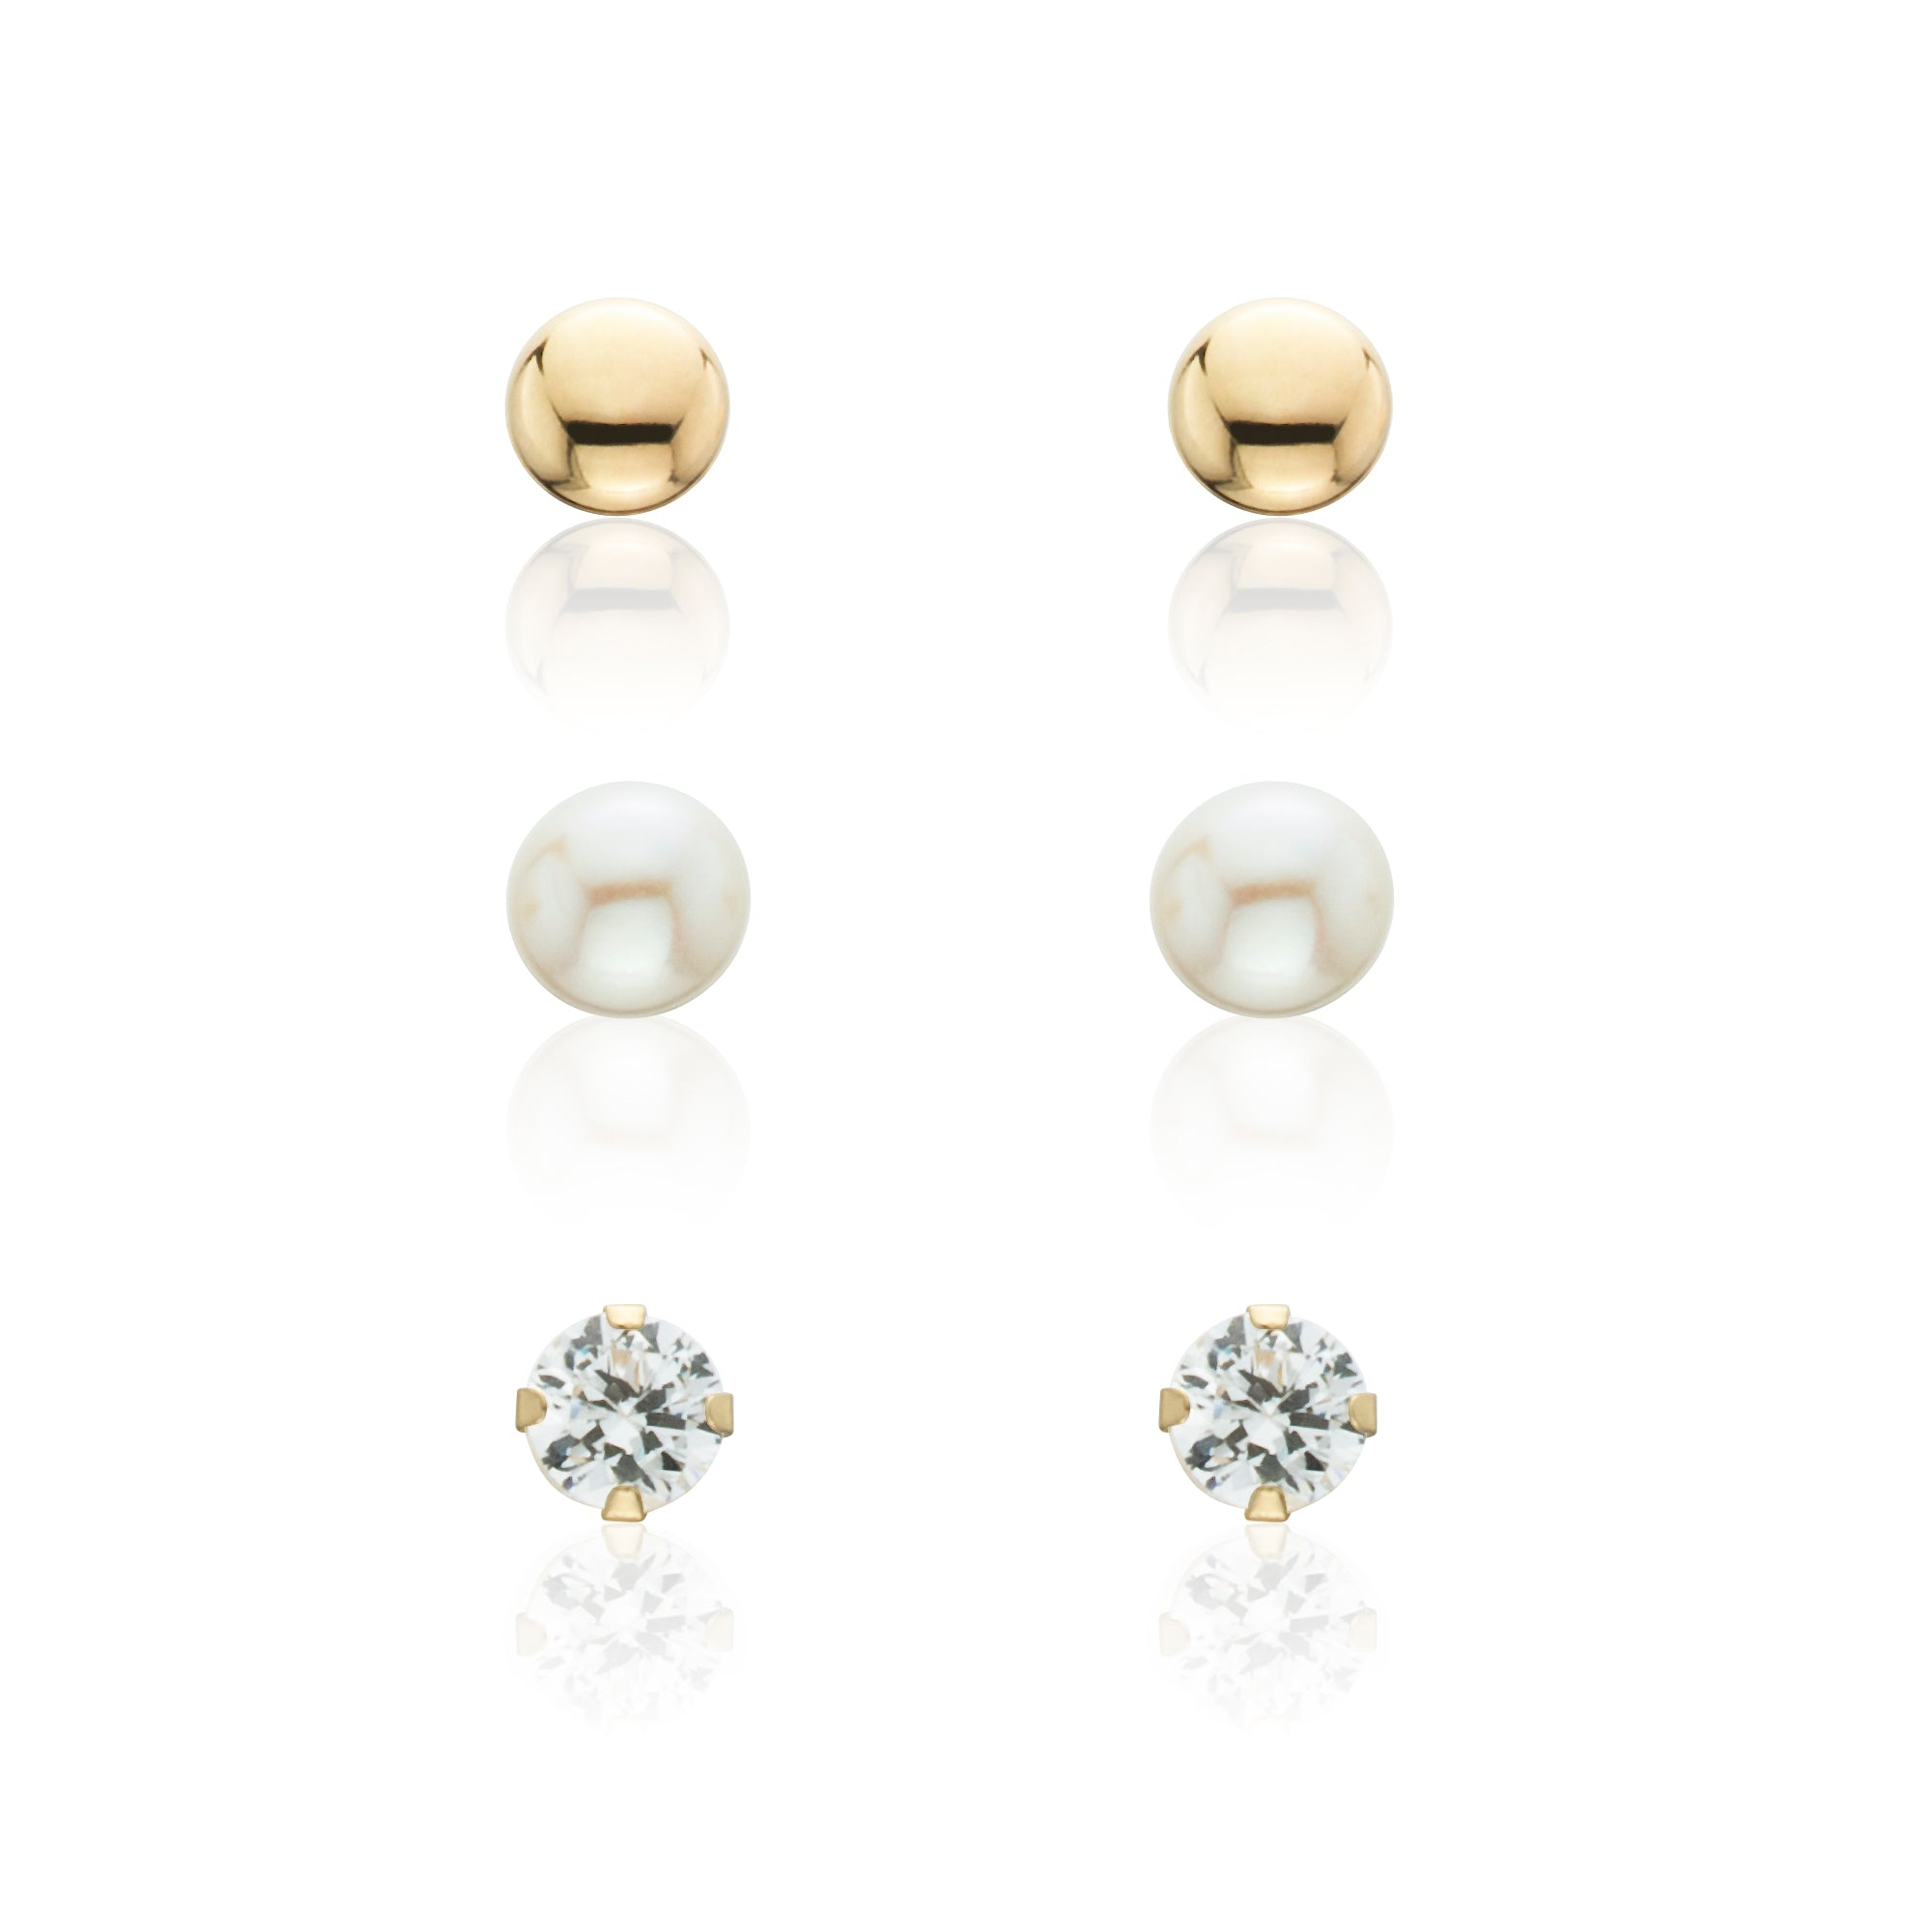 ball pinterest smile stud earrings mm me make pin